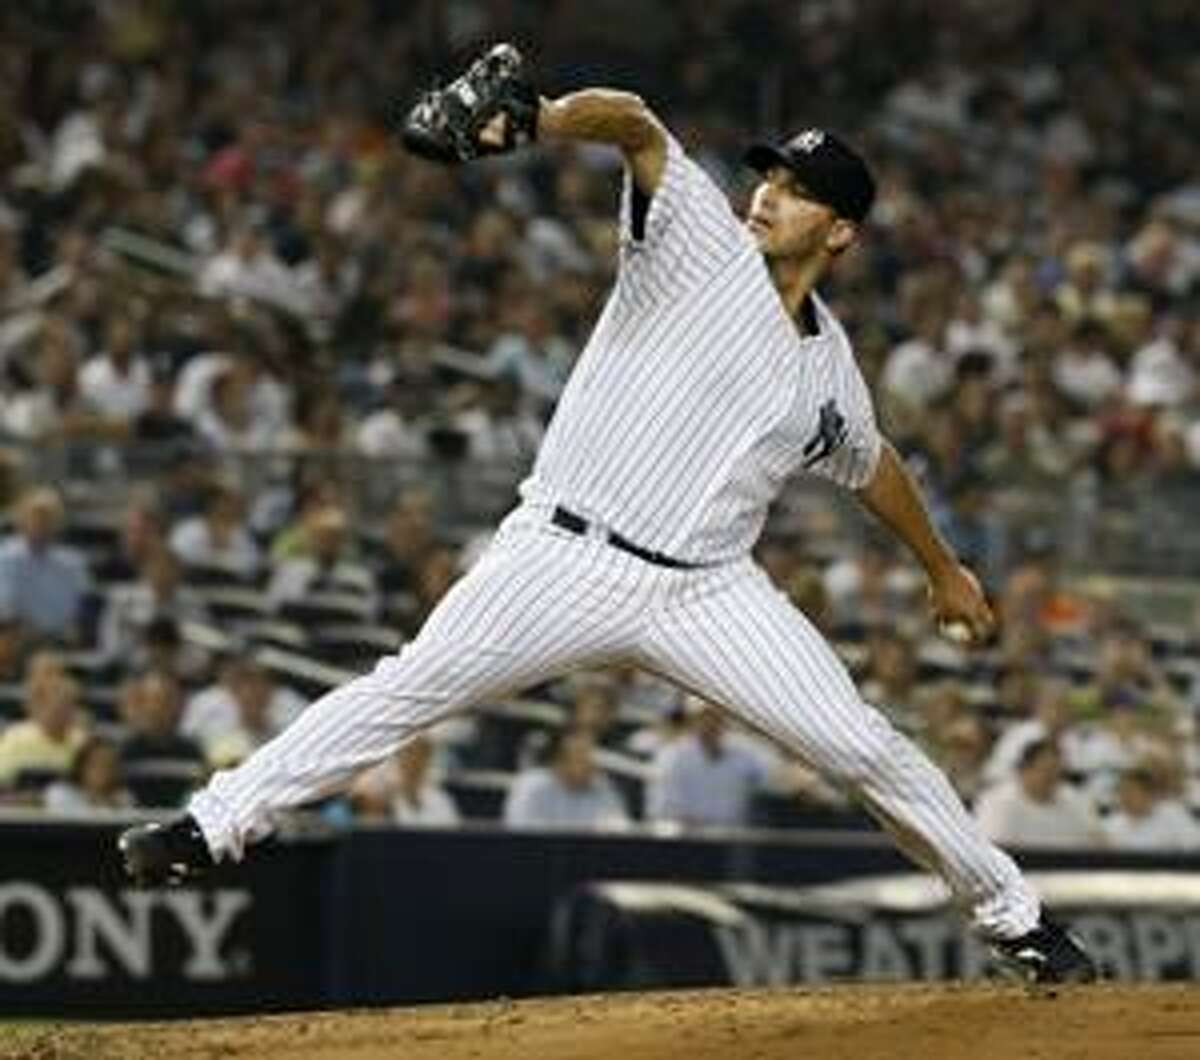 New York Yankees pitcher Andy Pettitte threw seven shutout innings against the Boston Red Sox Sunday night at Yankee Stadium in New York's 5-2 victory.